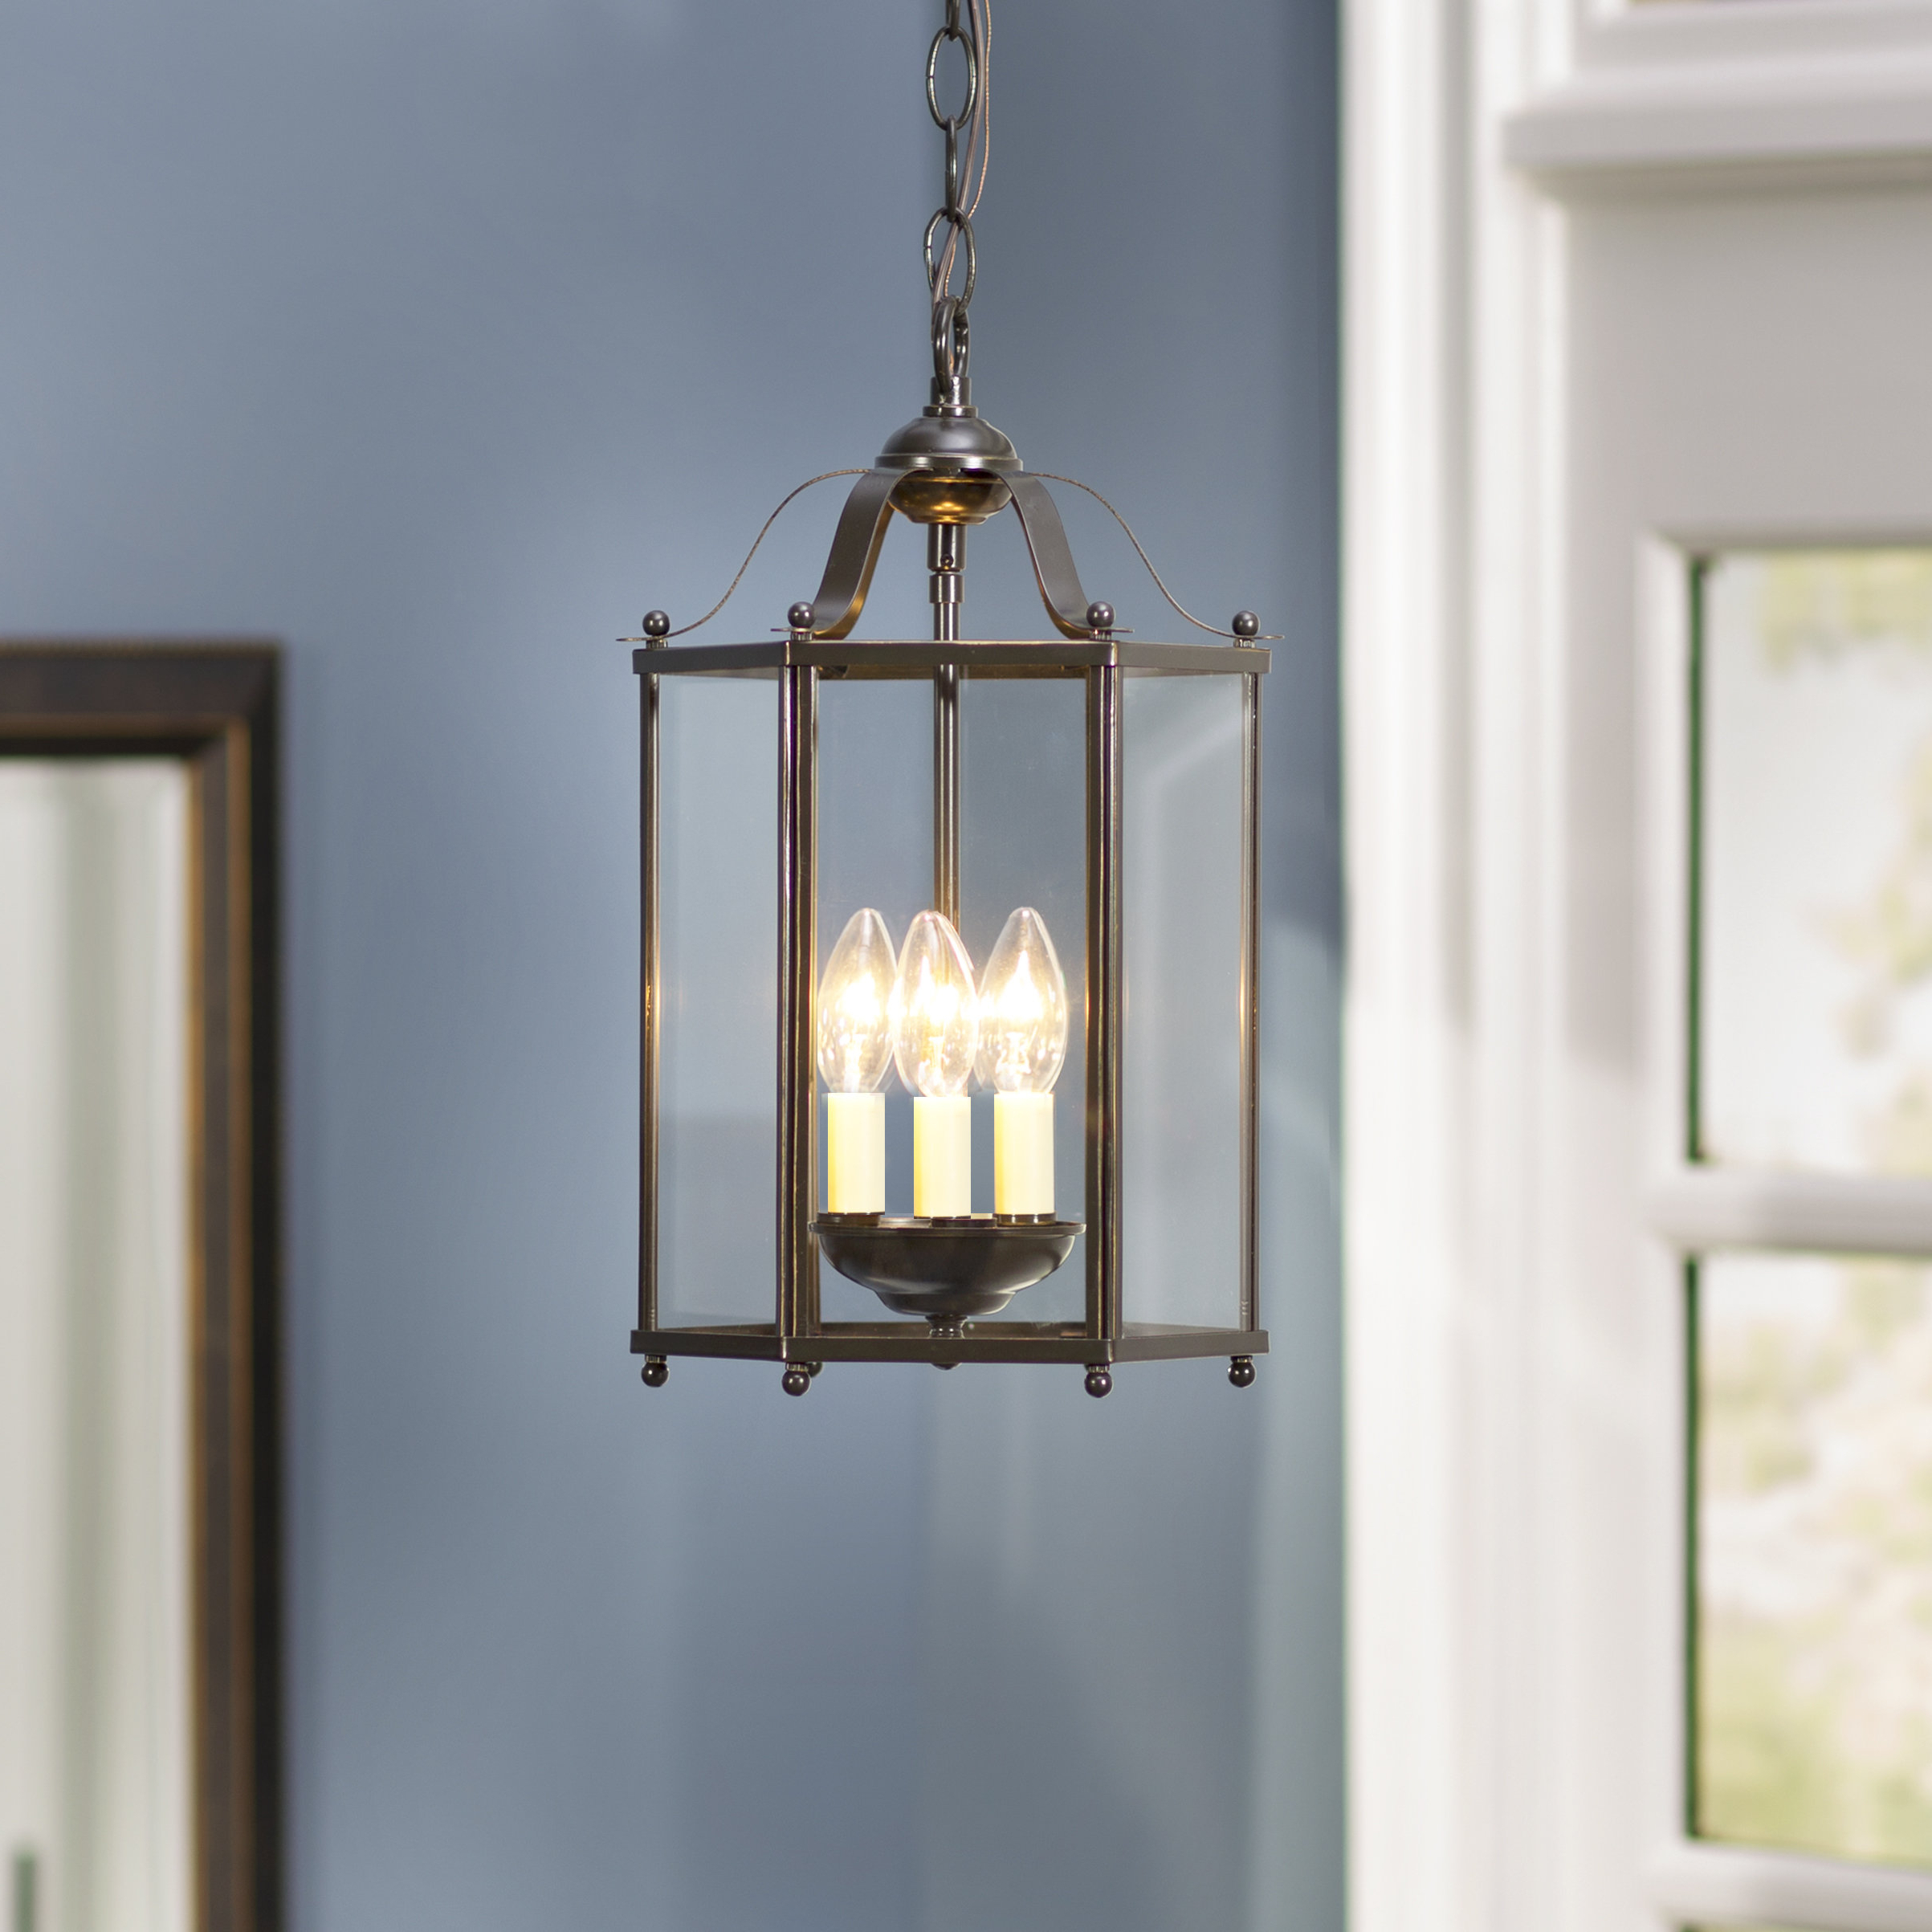 Chauvin 3 Light Lantern Geometric Pendants For Most Current Leiters 3 Light Lantern Geometric Pendant (Gallery 2 of 20)